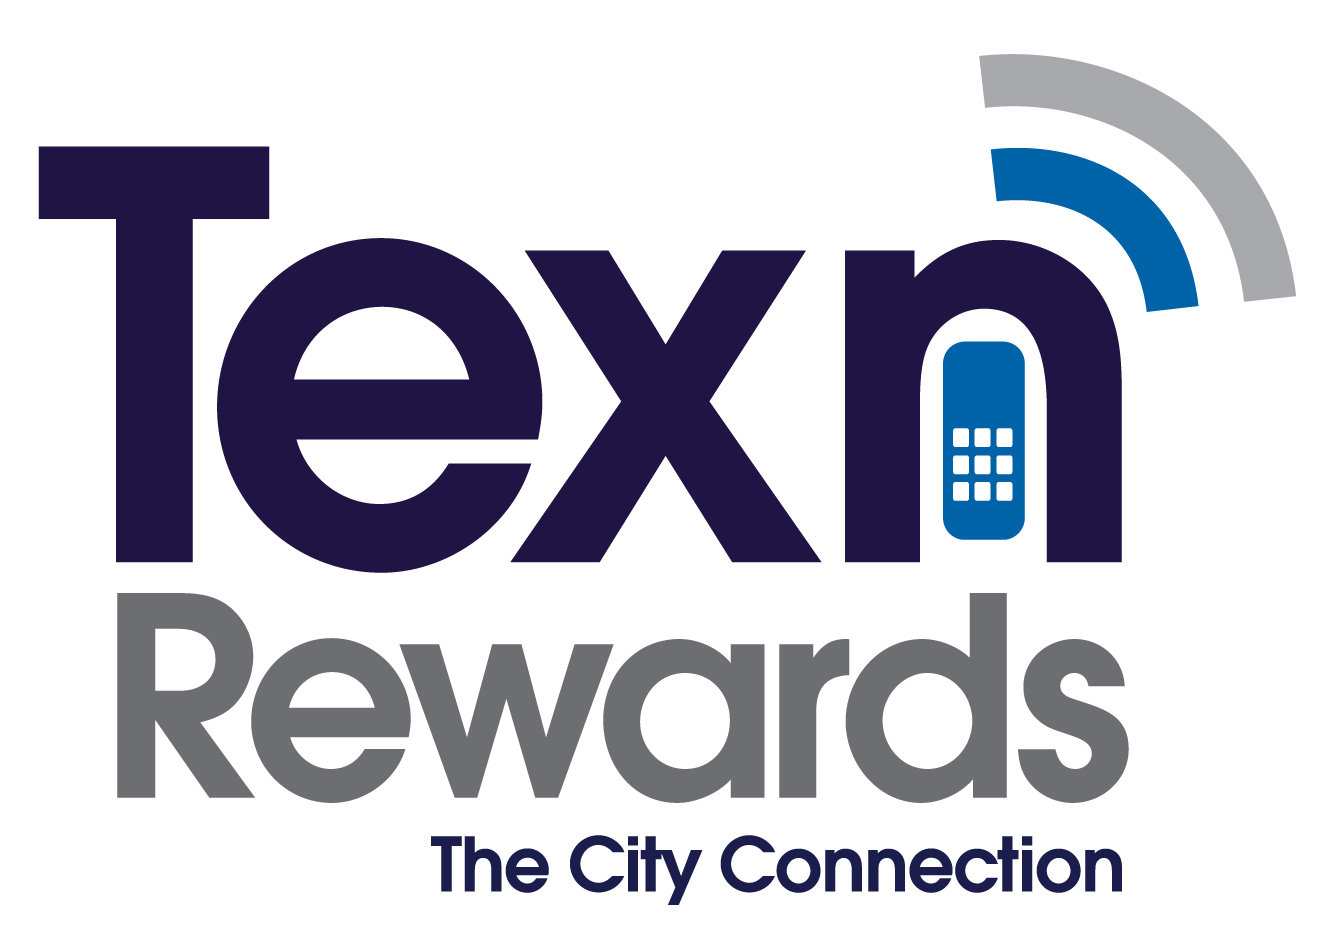 Texn Rewards